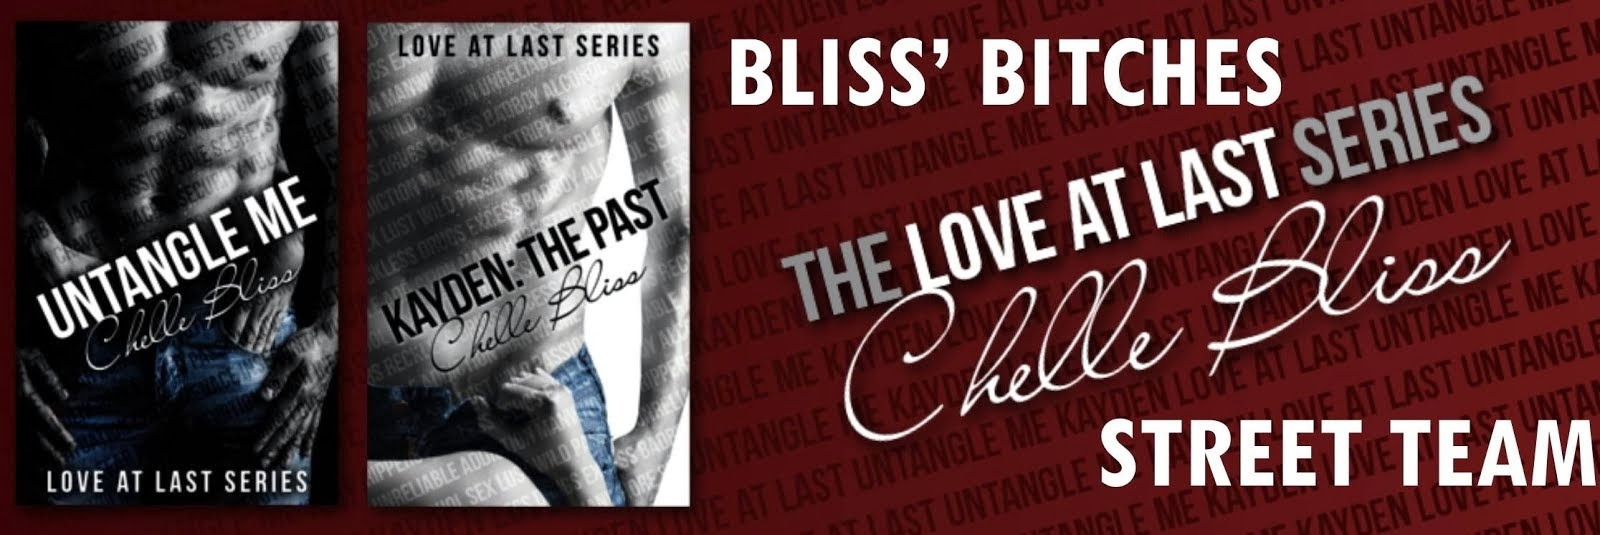 CHELLE BLISS STREET TEAM